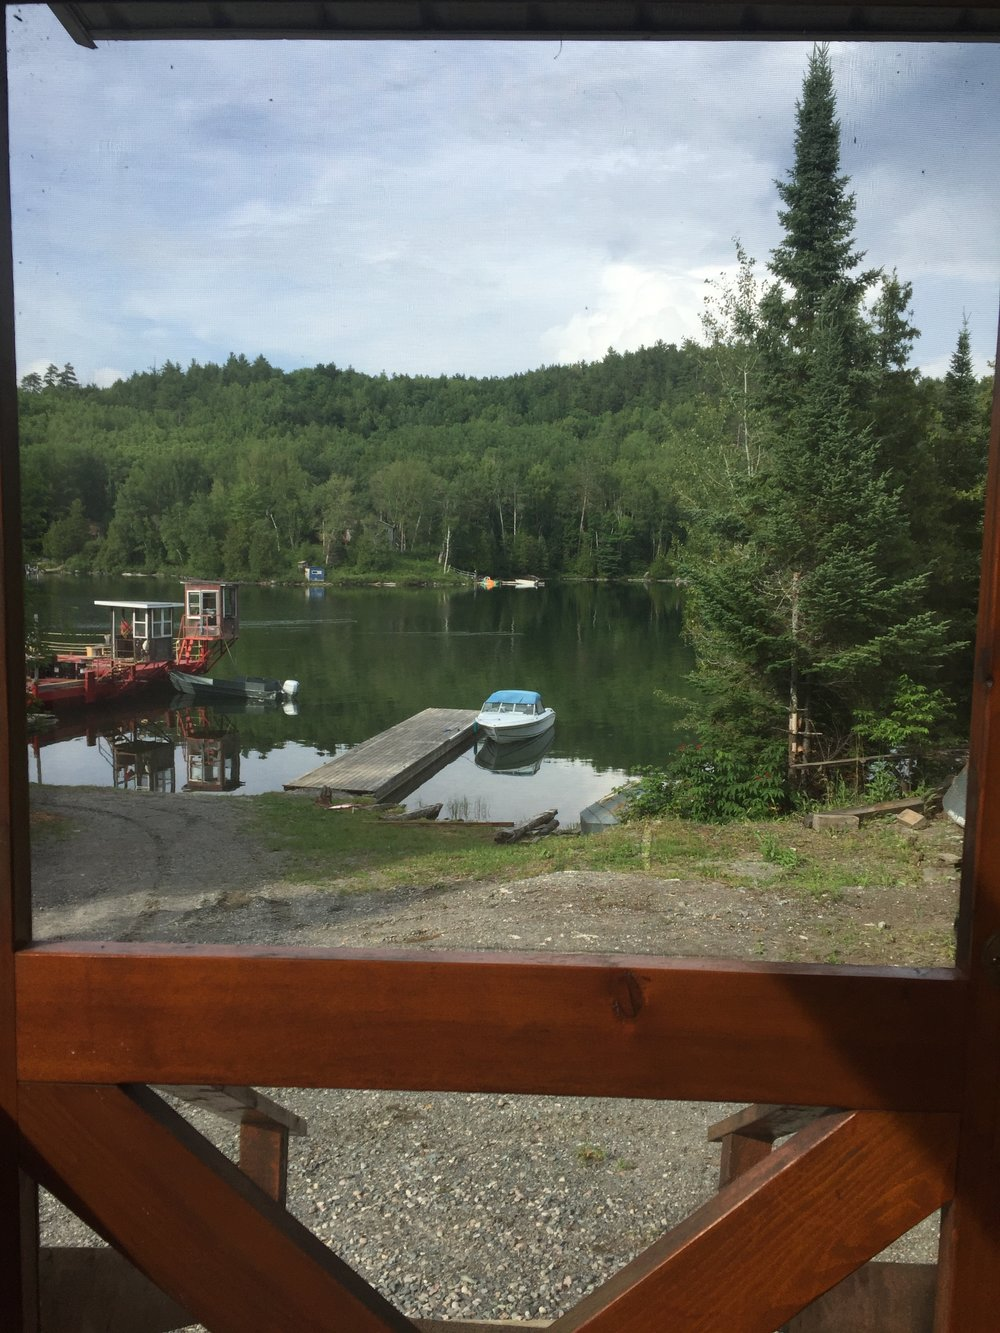 The view from the mentors' home away from home: Linda's Wigwam!